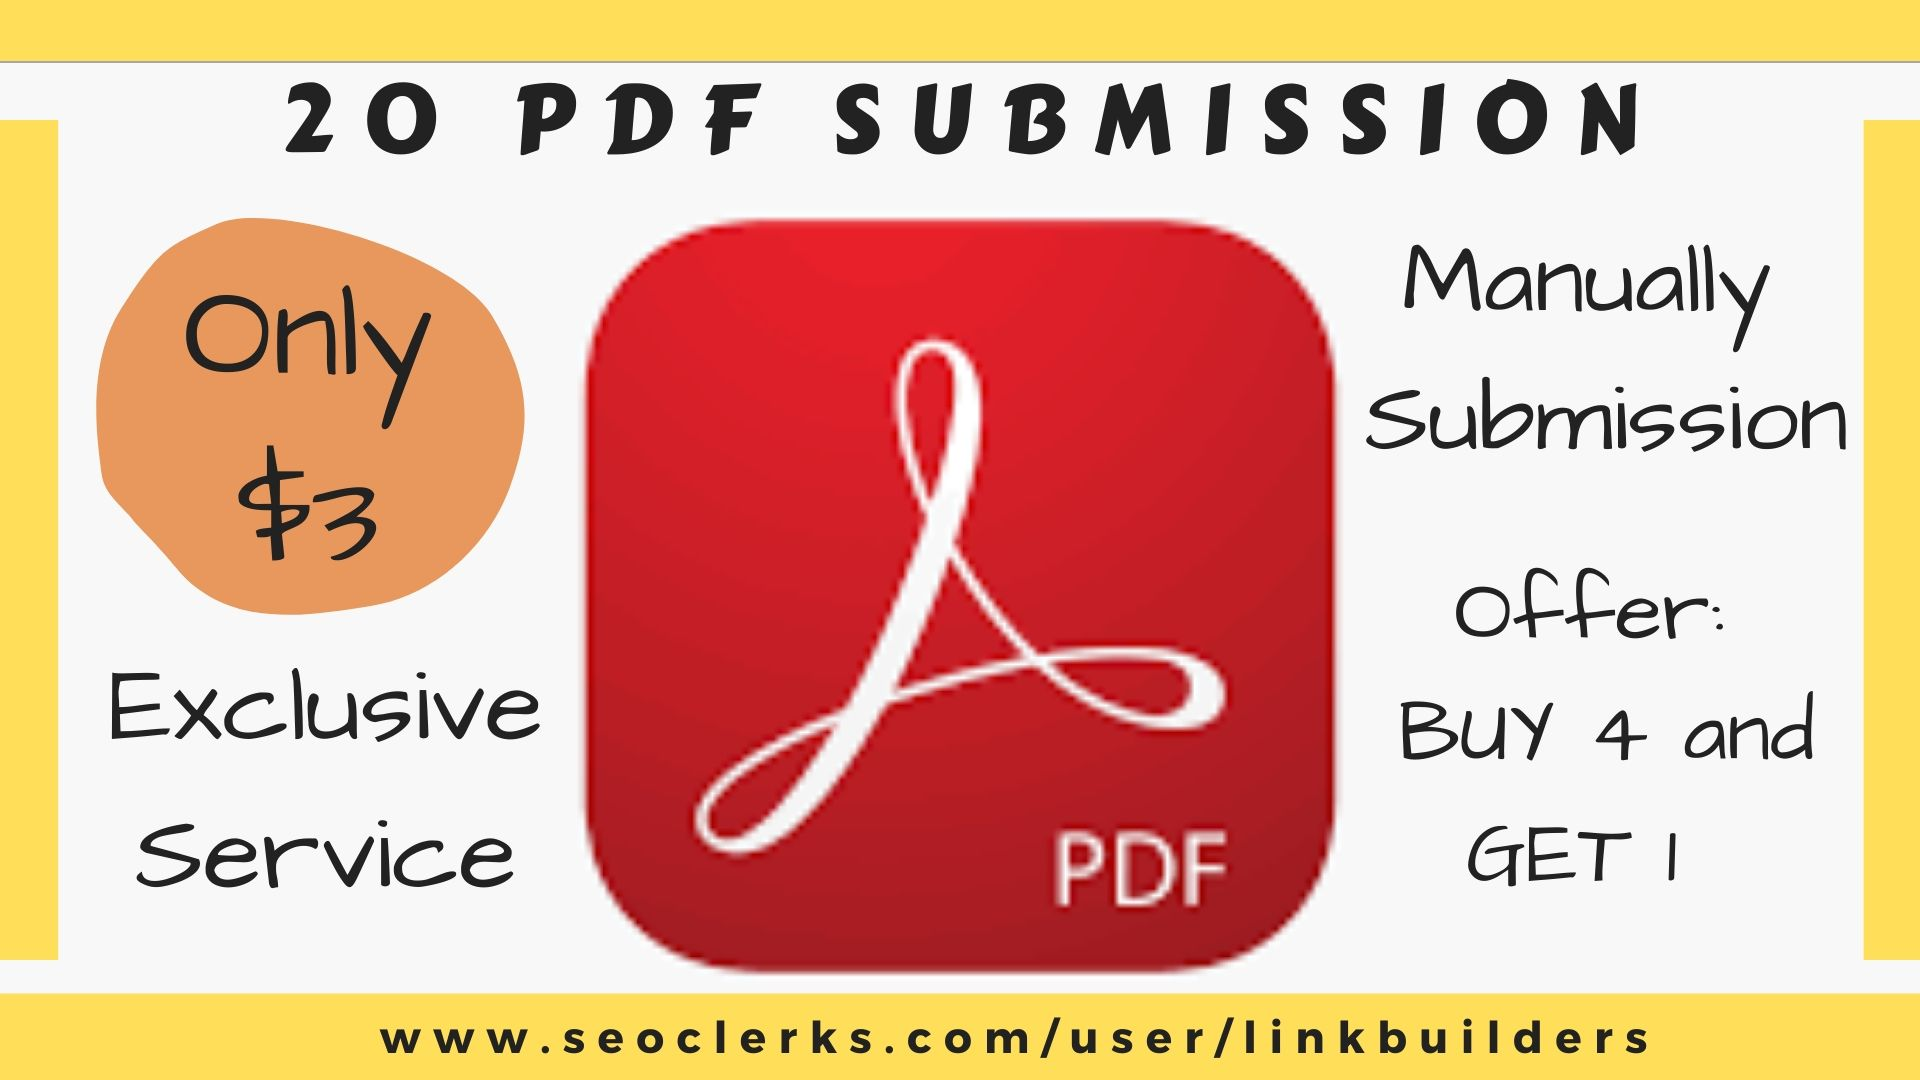 20 PDF submission on document sharing sites